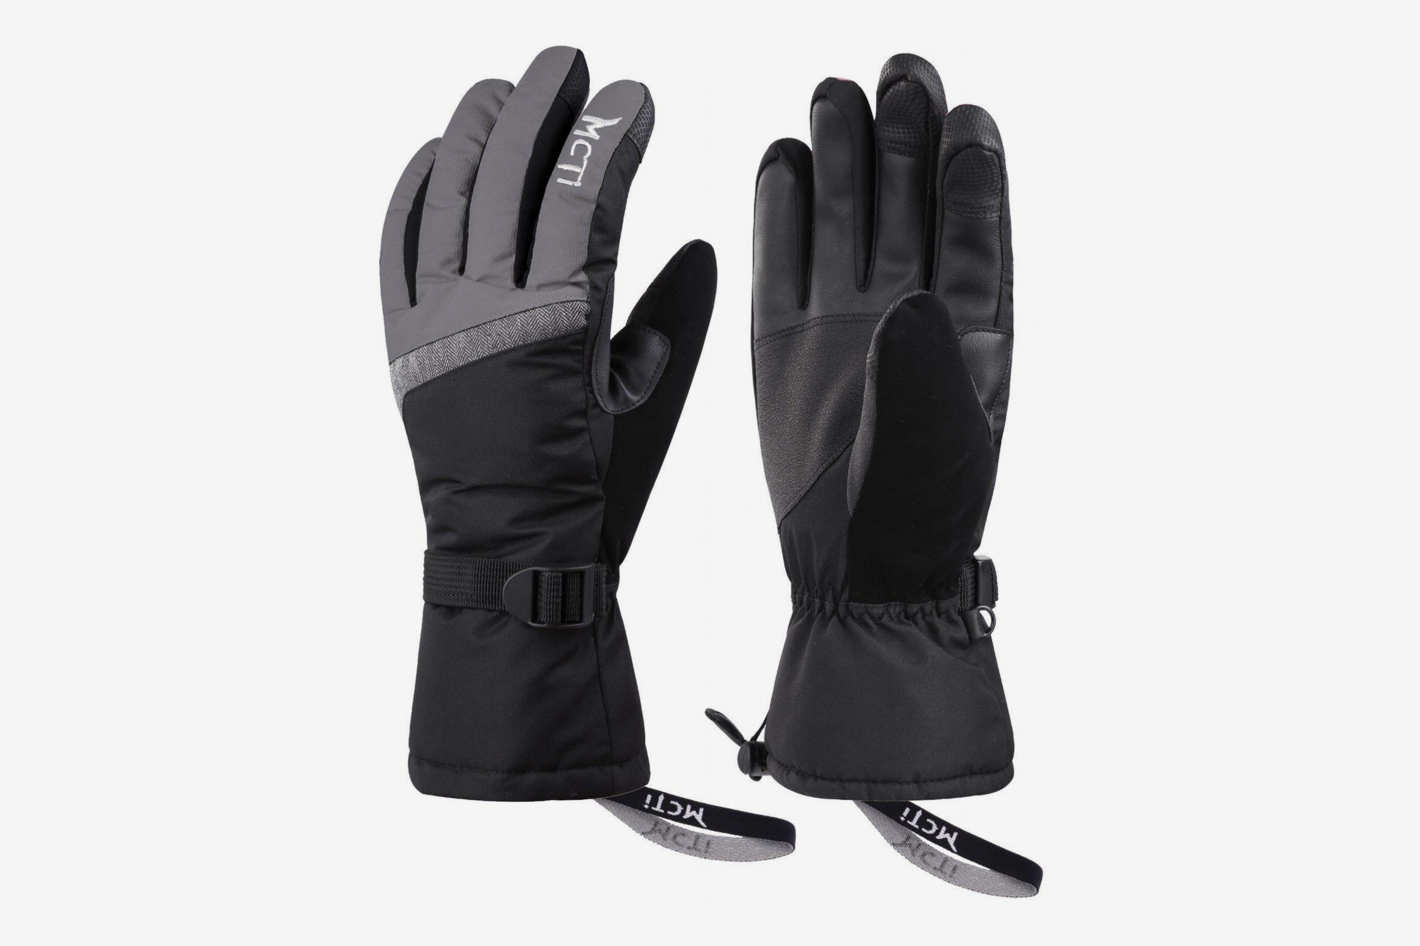 MCTi Winter Waterproof Touchscreen Cold Weather Gloves